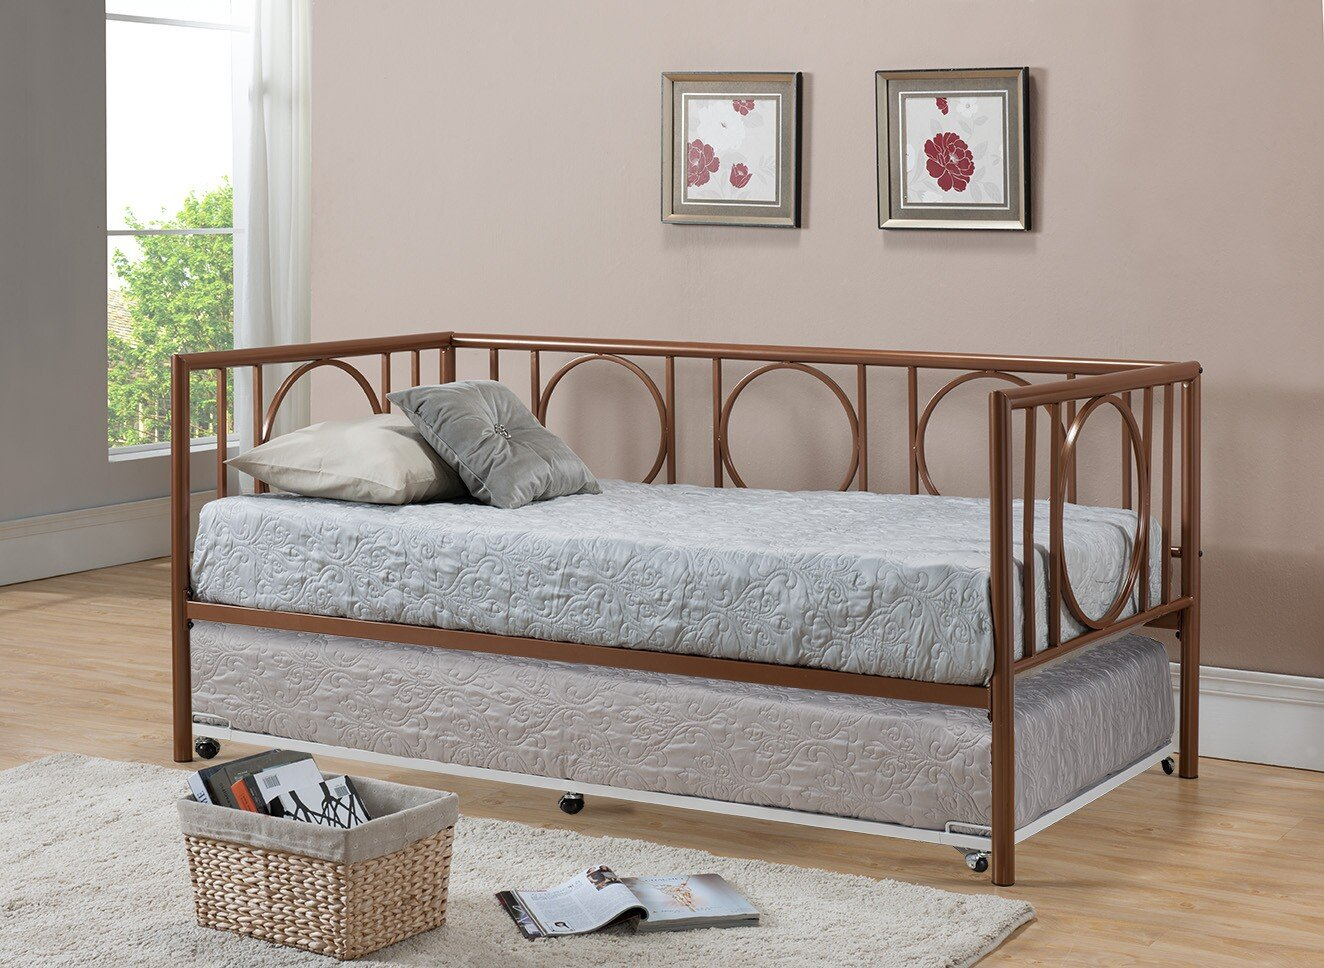 Amazon.com: Kings Brand Metal Astoria Day Bed (Daybed) Frame With Trundle  (Copper): Kitchen & Dining - Amazon.com: Kings Brand Metal Astoria Day Bed (Daybed) Frame With